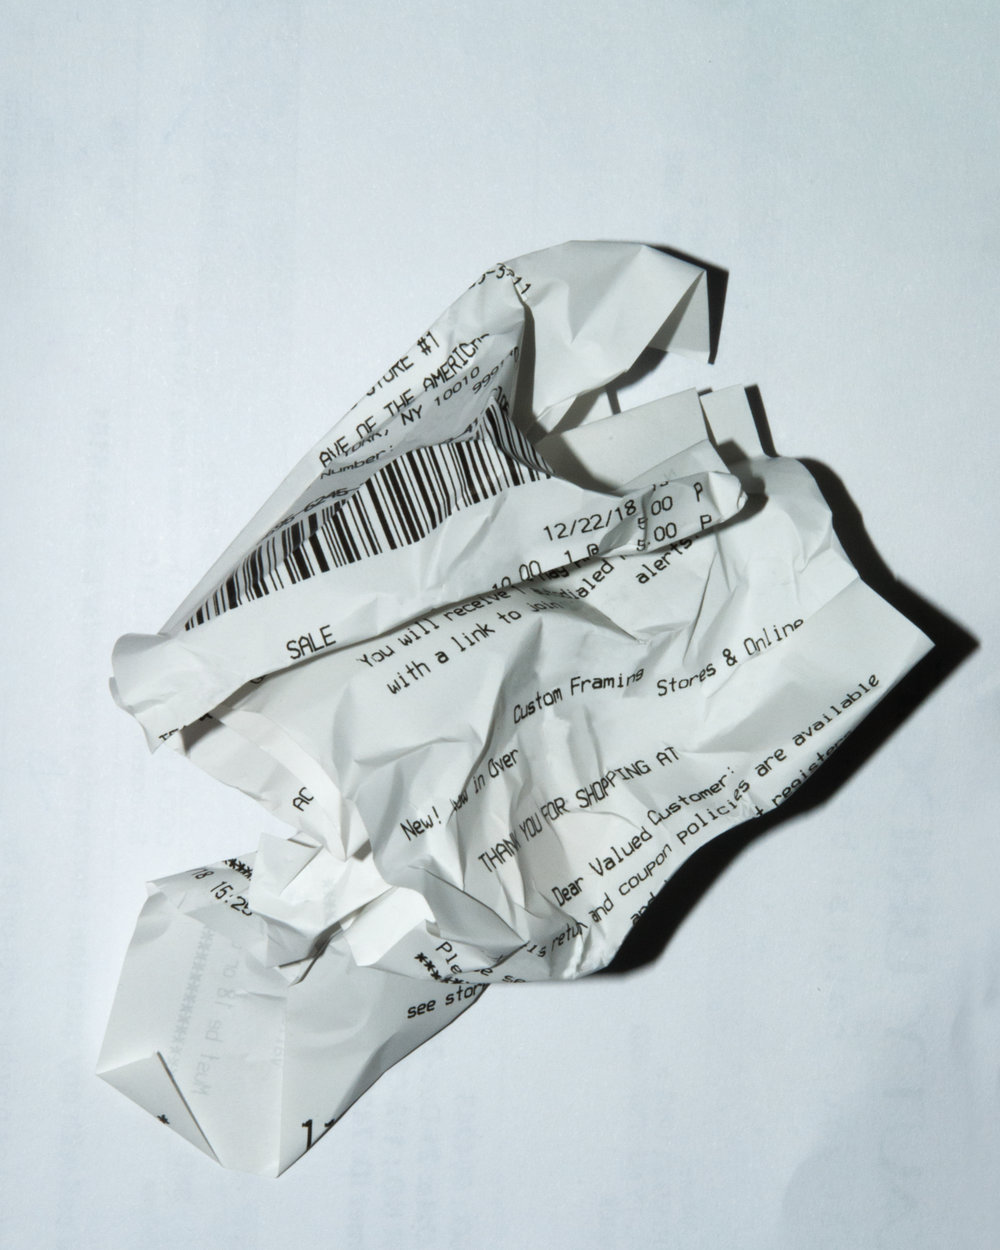 PaperRecycling